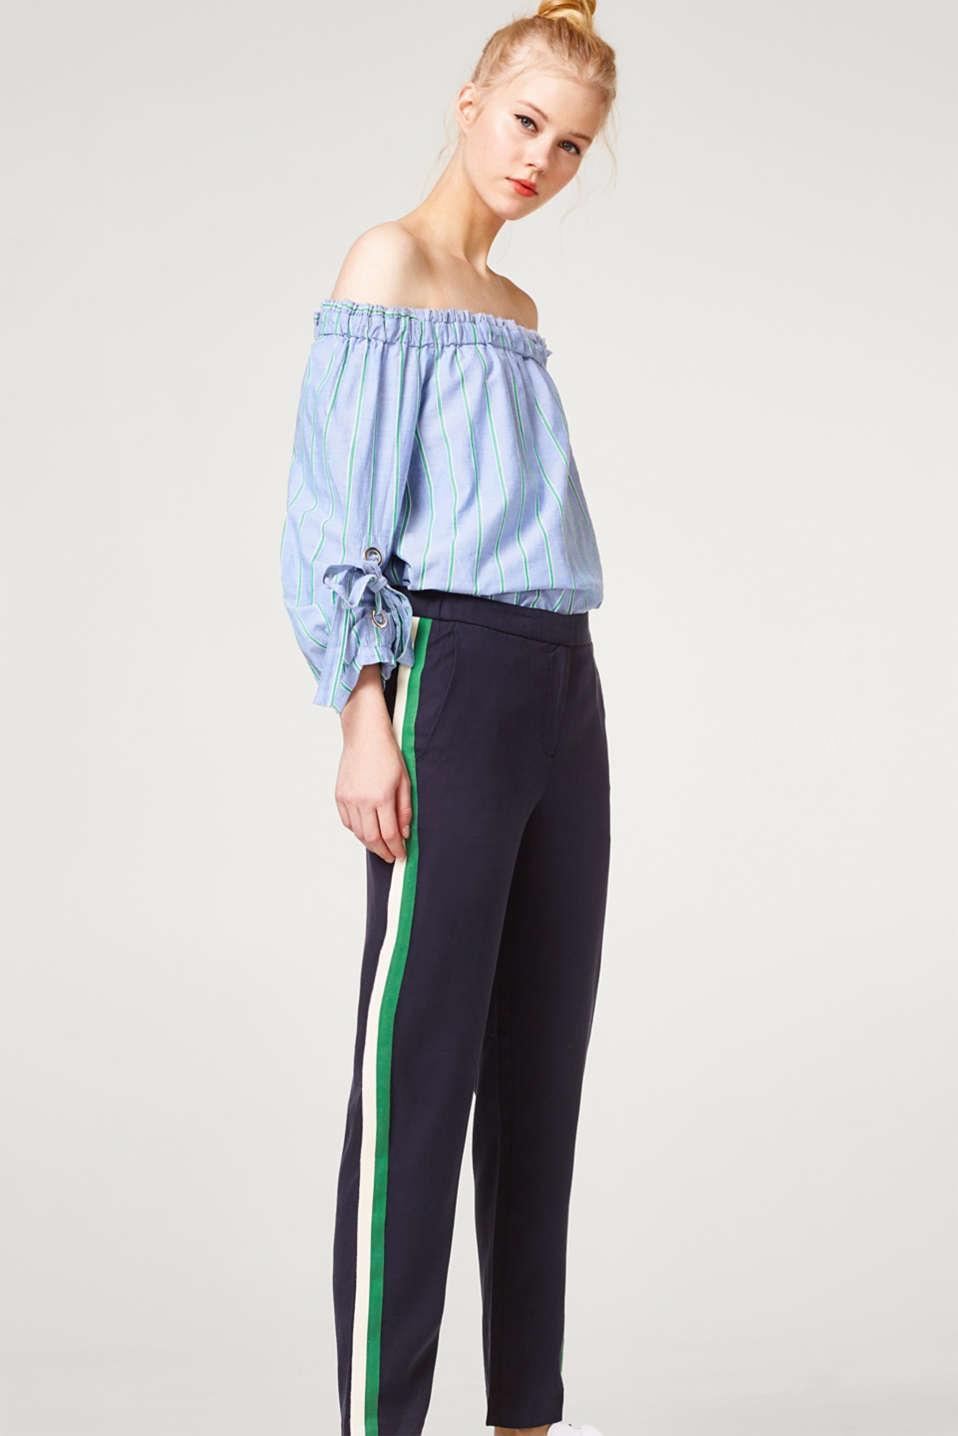 Esprit - Flowing textured trousers with tuxedo stripes